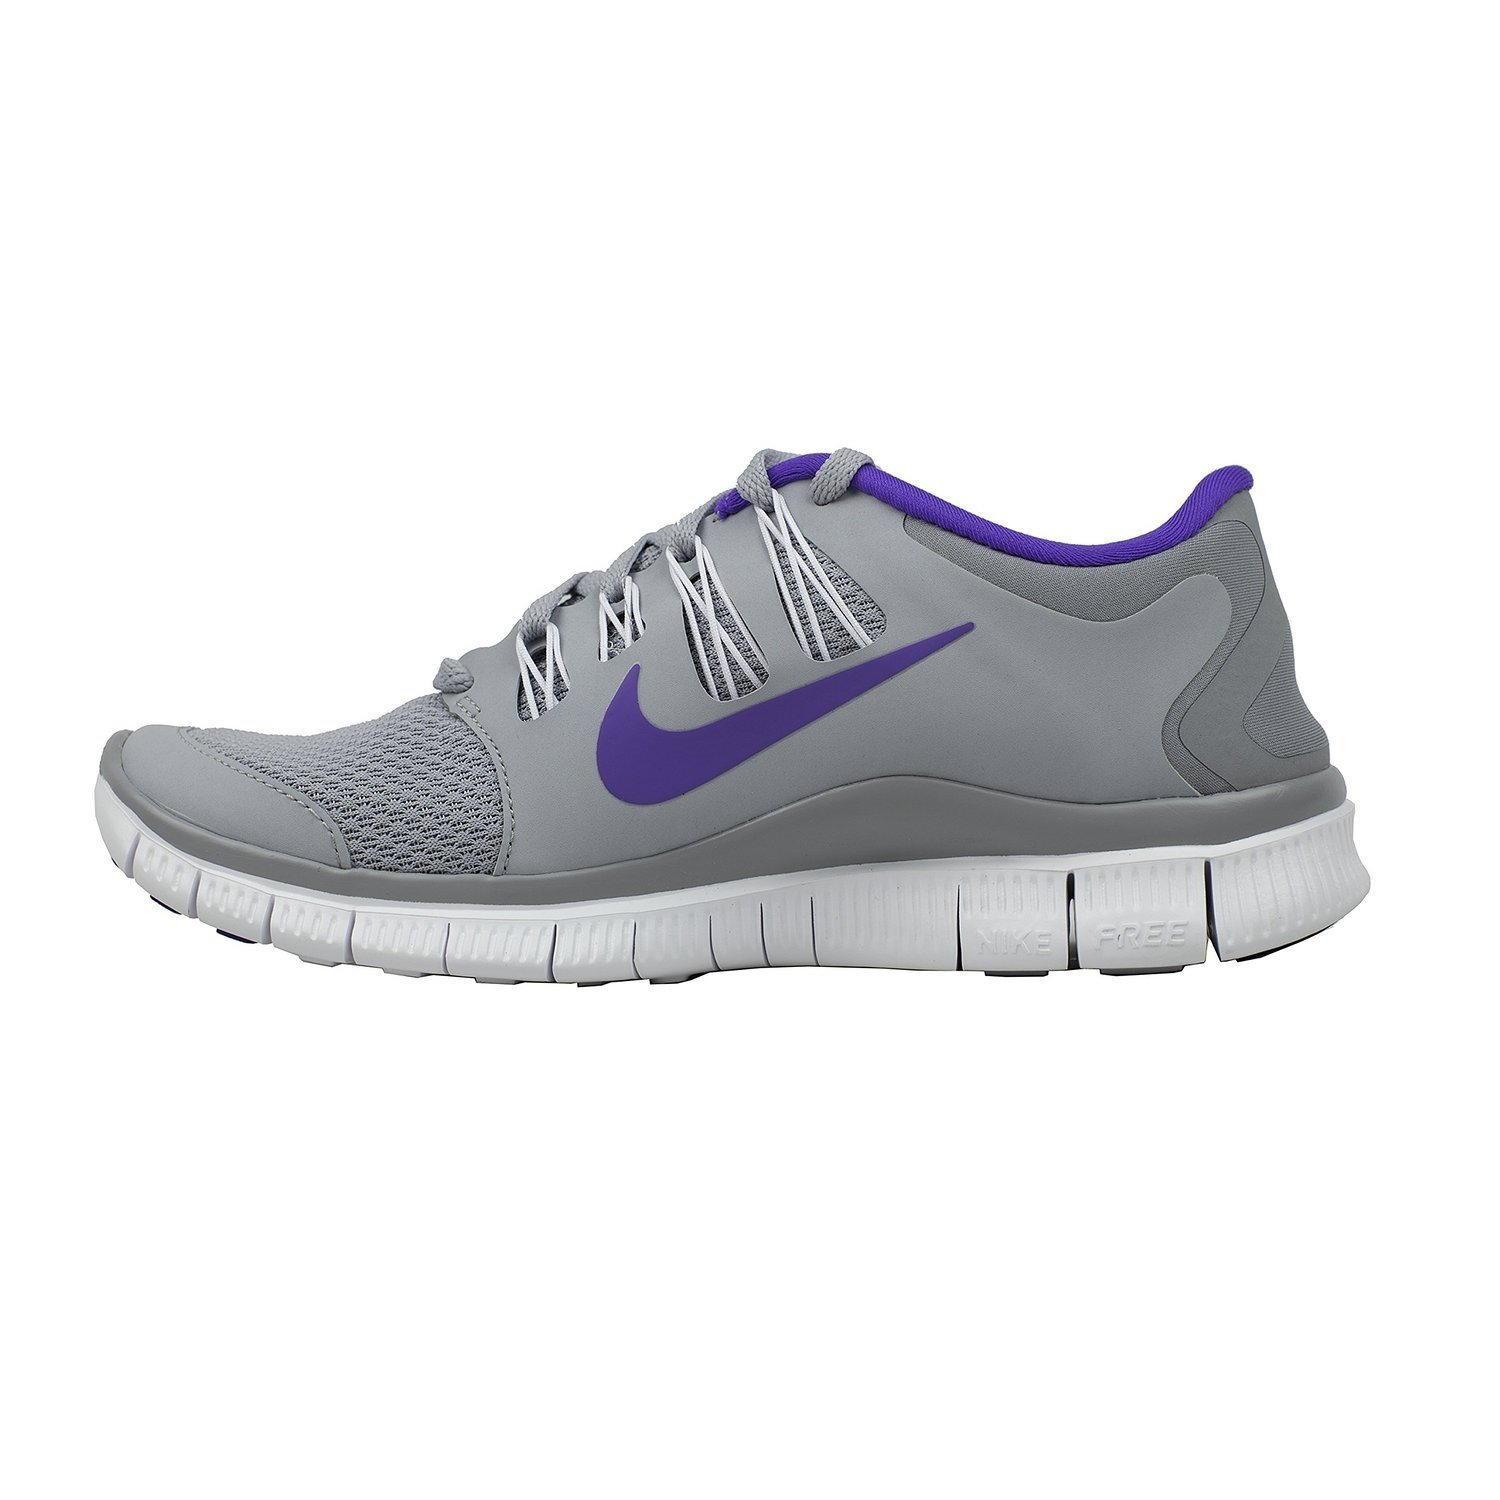 online store ea022 0eb43 NIKE Women's Free 5.0+ Running Shoes